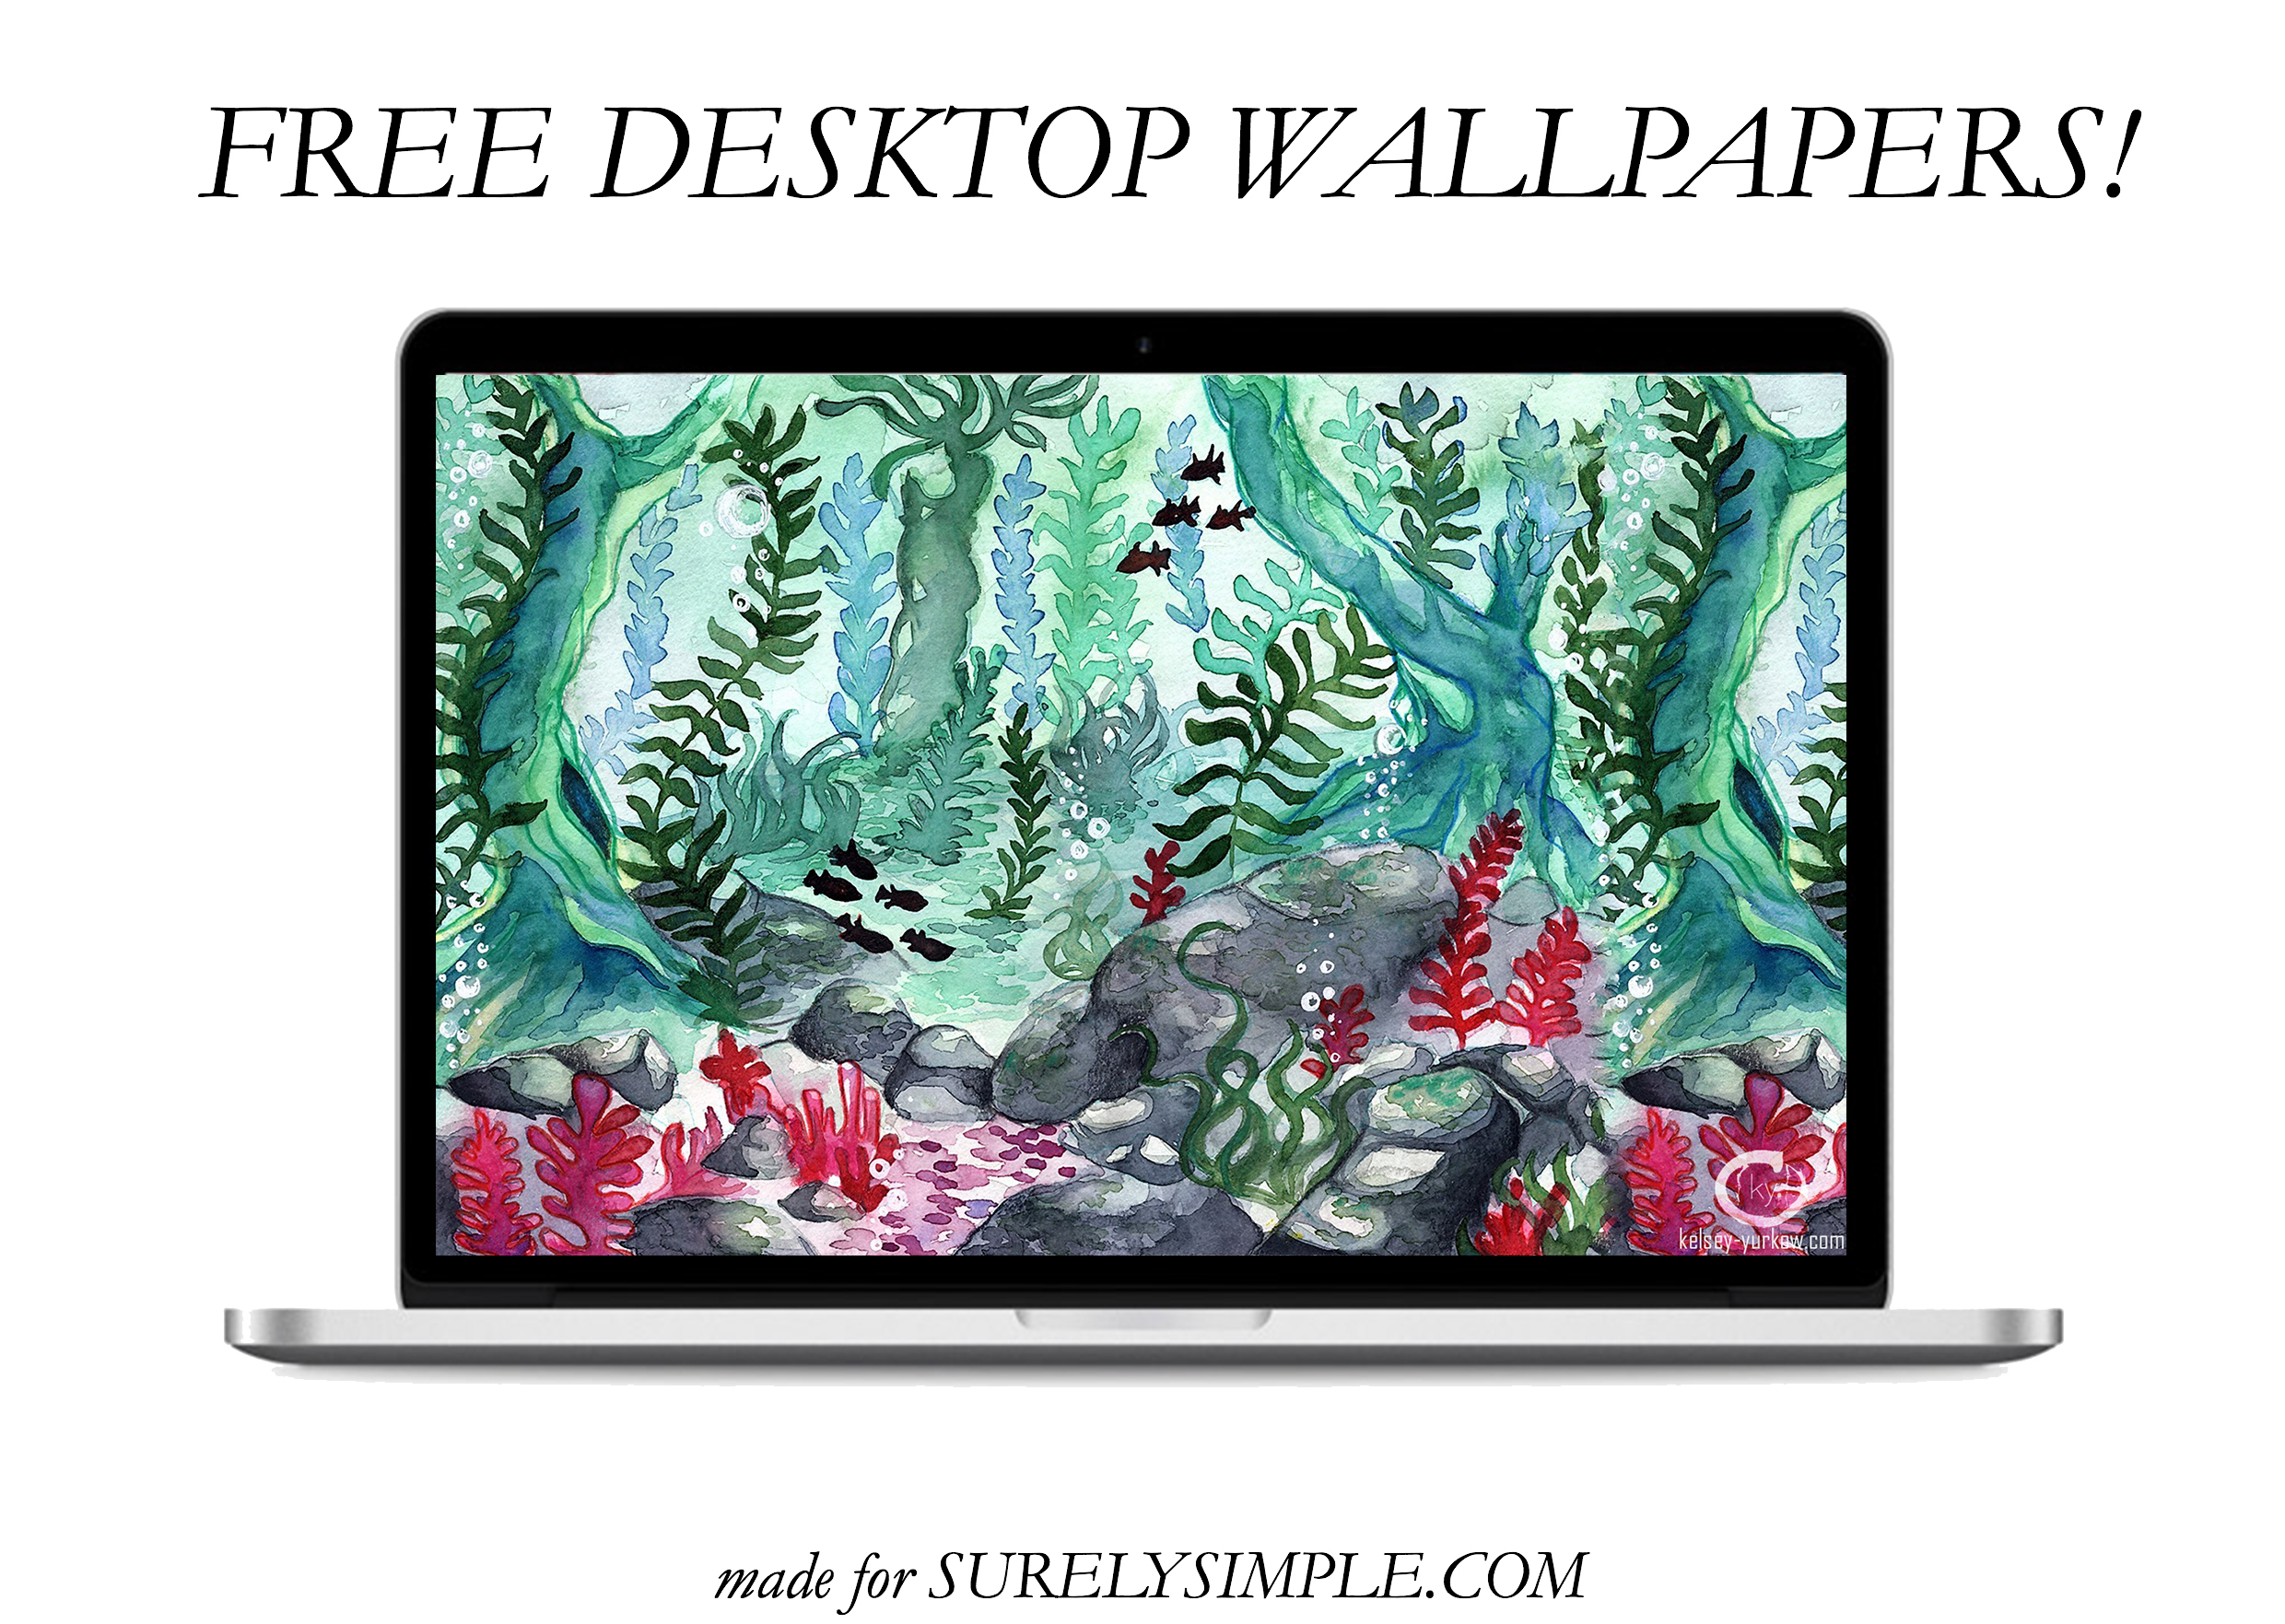 5 Free Artistic Phone and Desktop Wallpapers! | Surelysimple.com